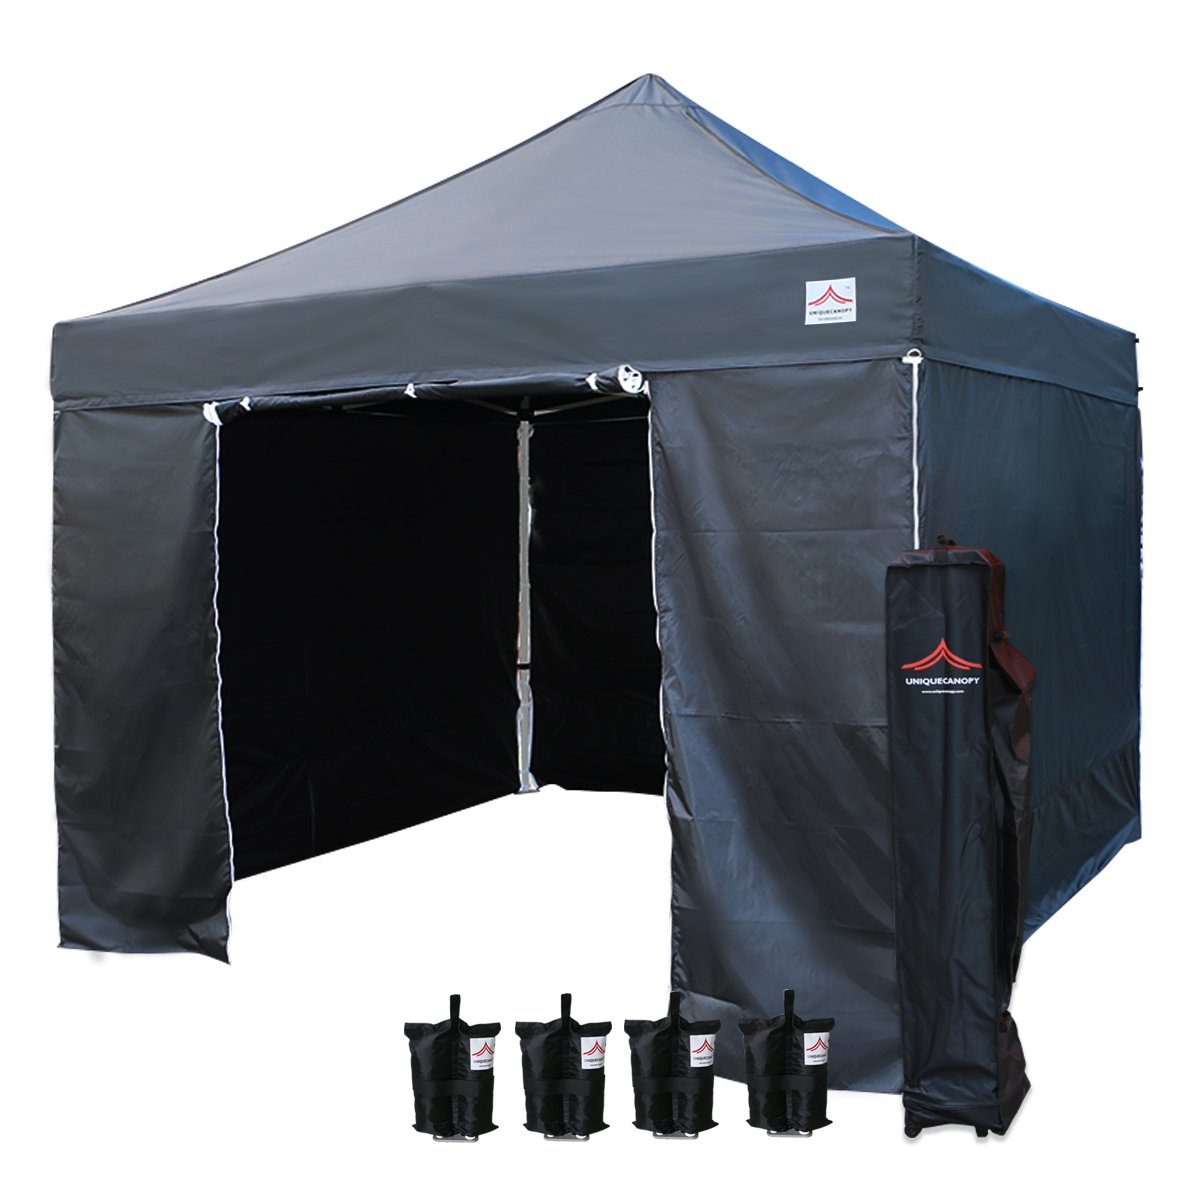 UNIQUECANOPY 10x10 Ez Pop up Canopy Tents for Parties Outdoor Portable Instant Folded Commercial Popup Shelter, with 4 Zippered Side Walls and Wheeled Carrying Bag Bonus 4 Sandbags Black